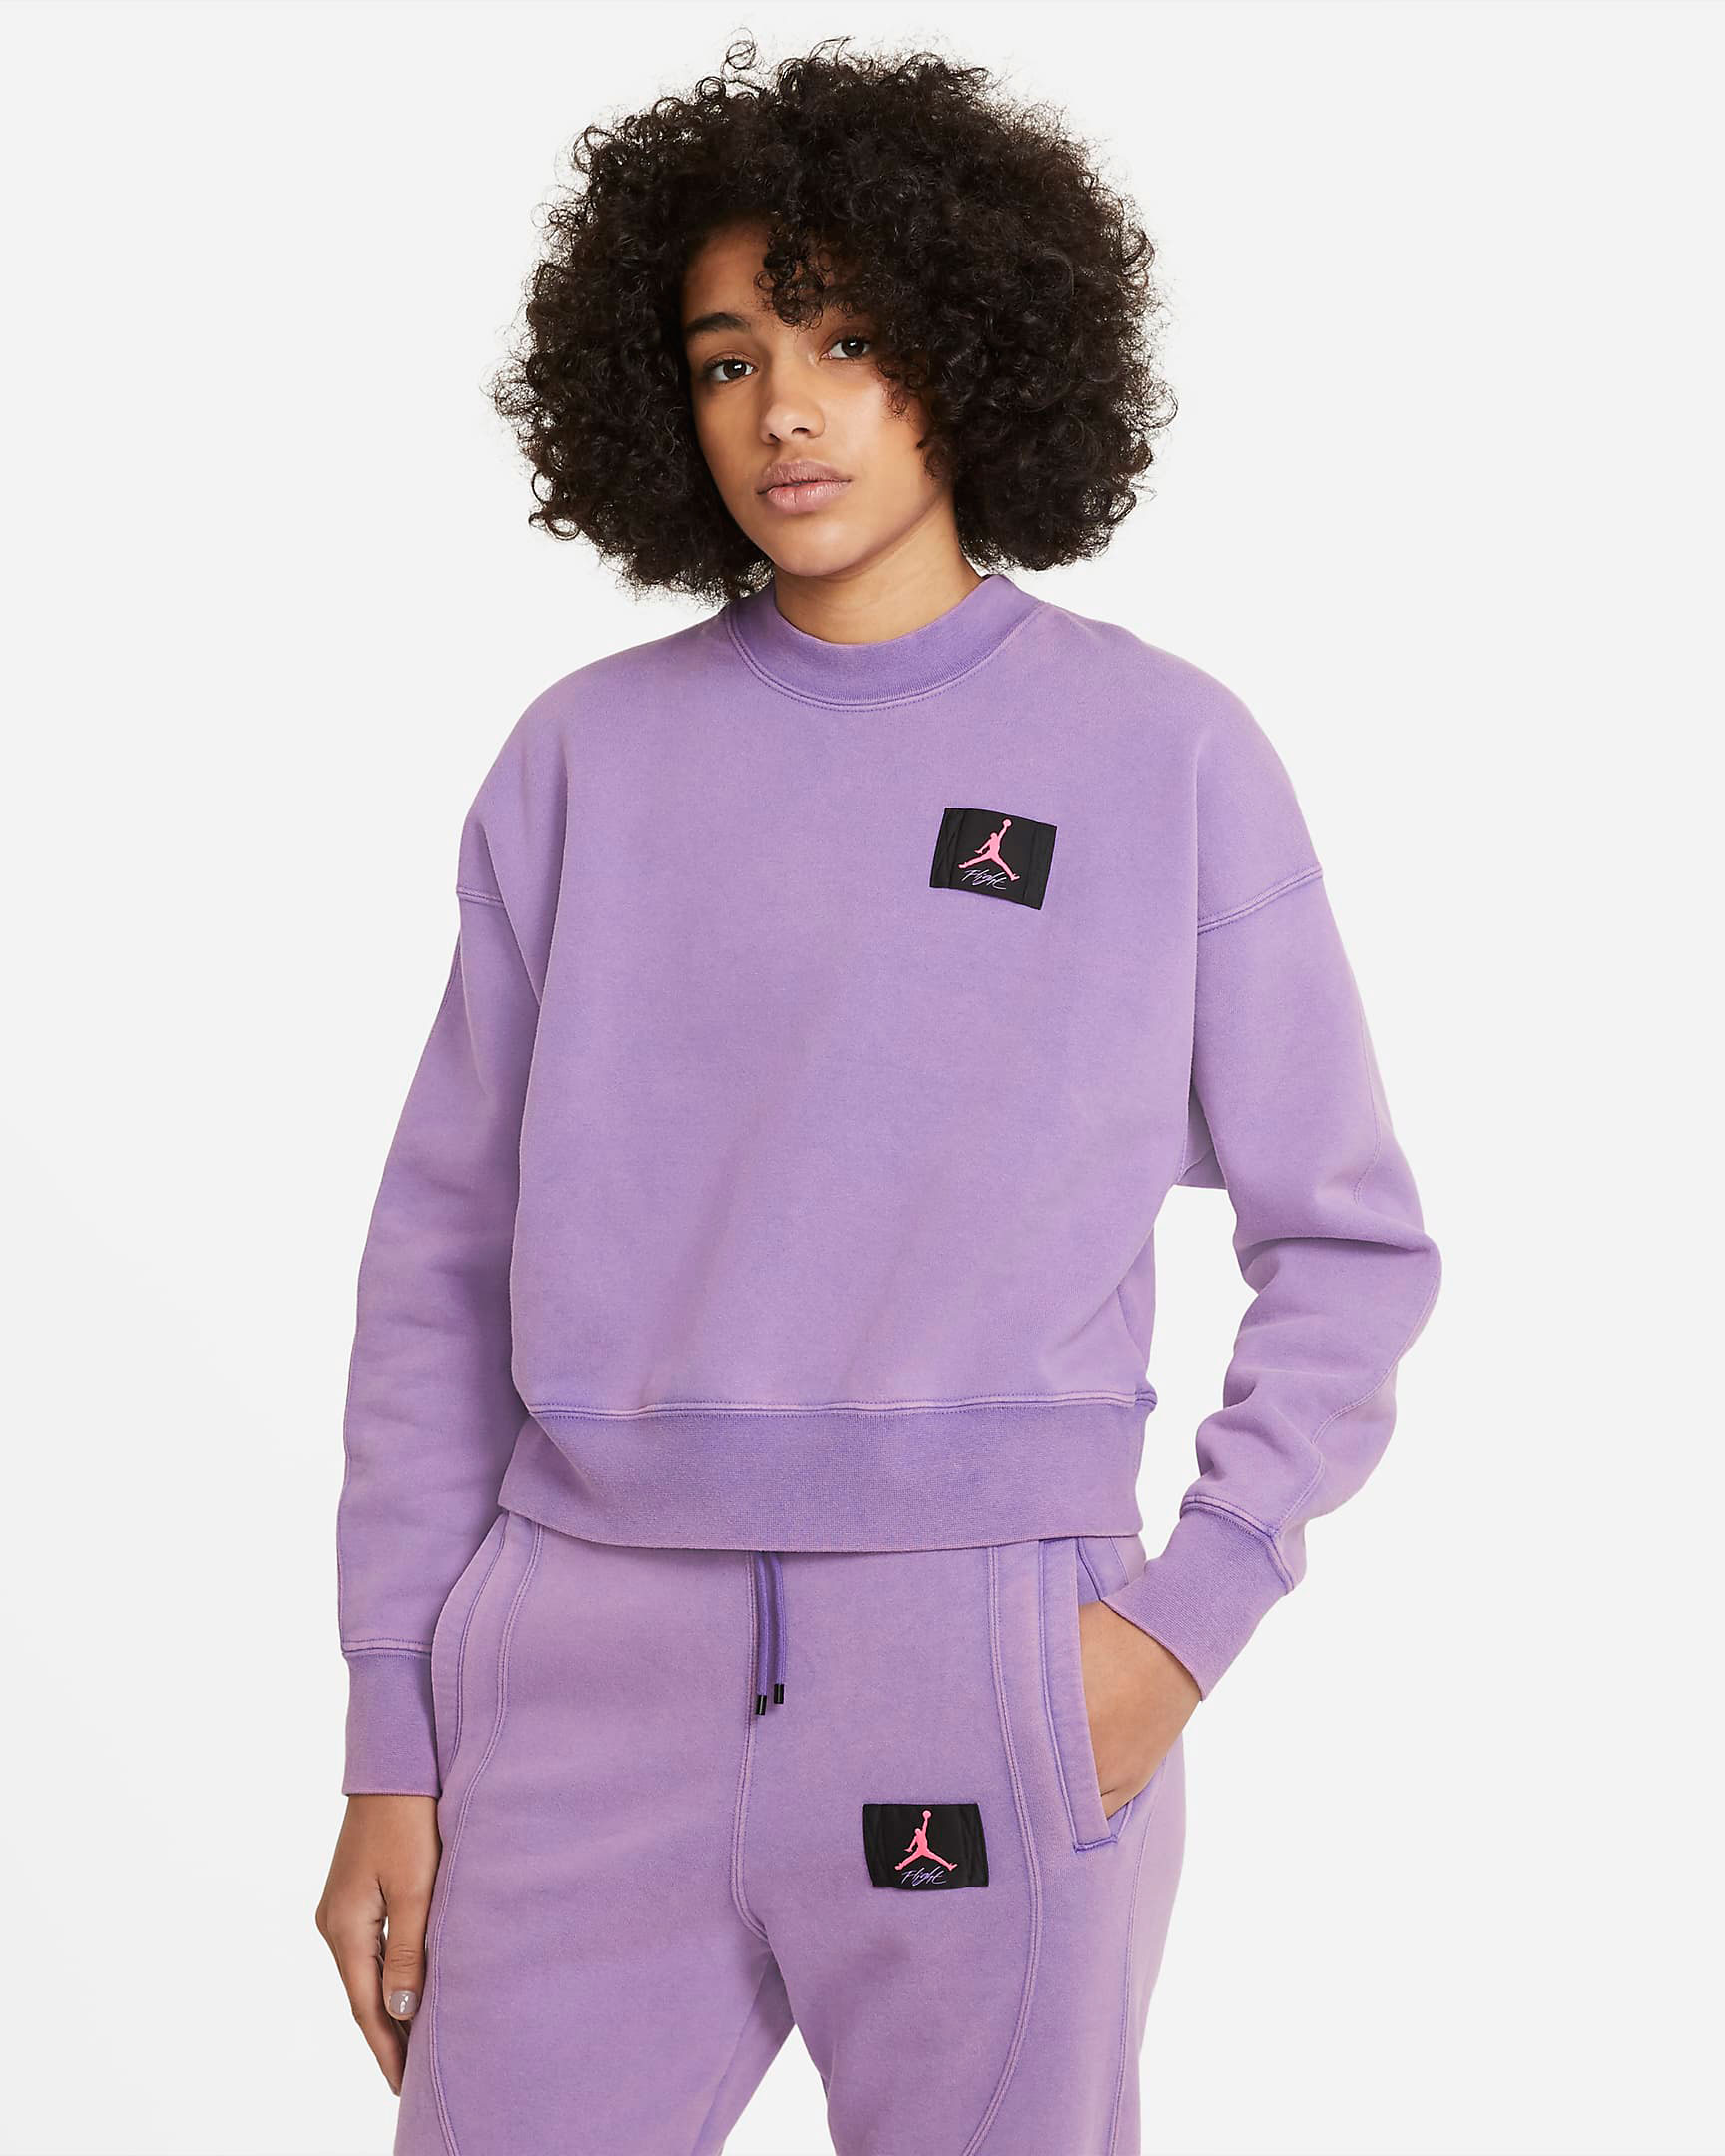 jordan-flight-womens-sweatshirt-purple-pink